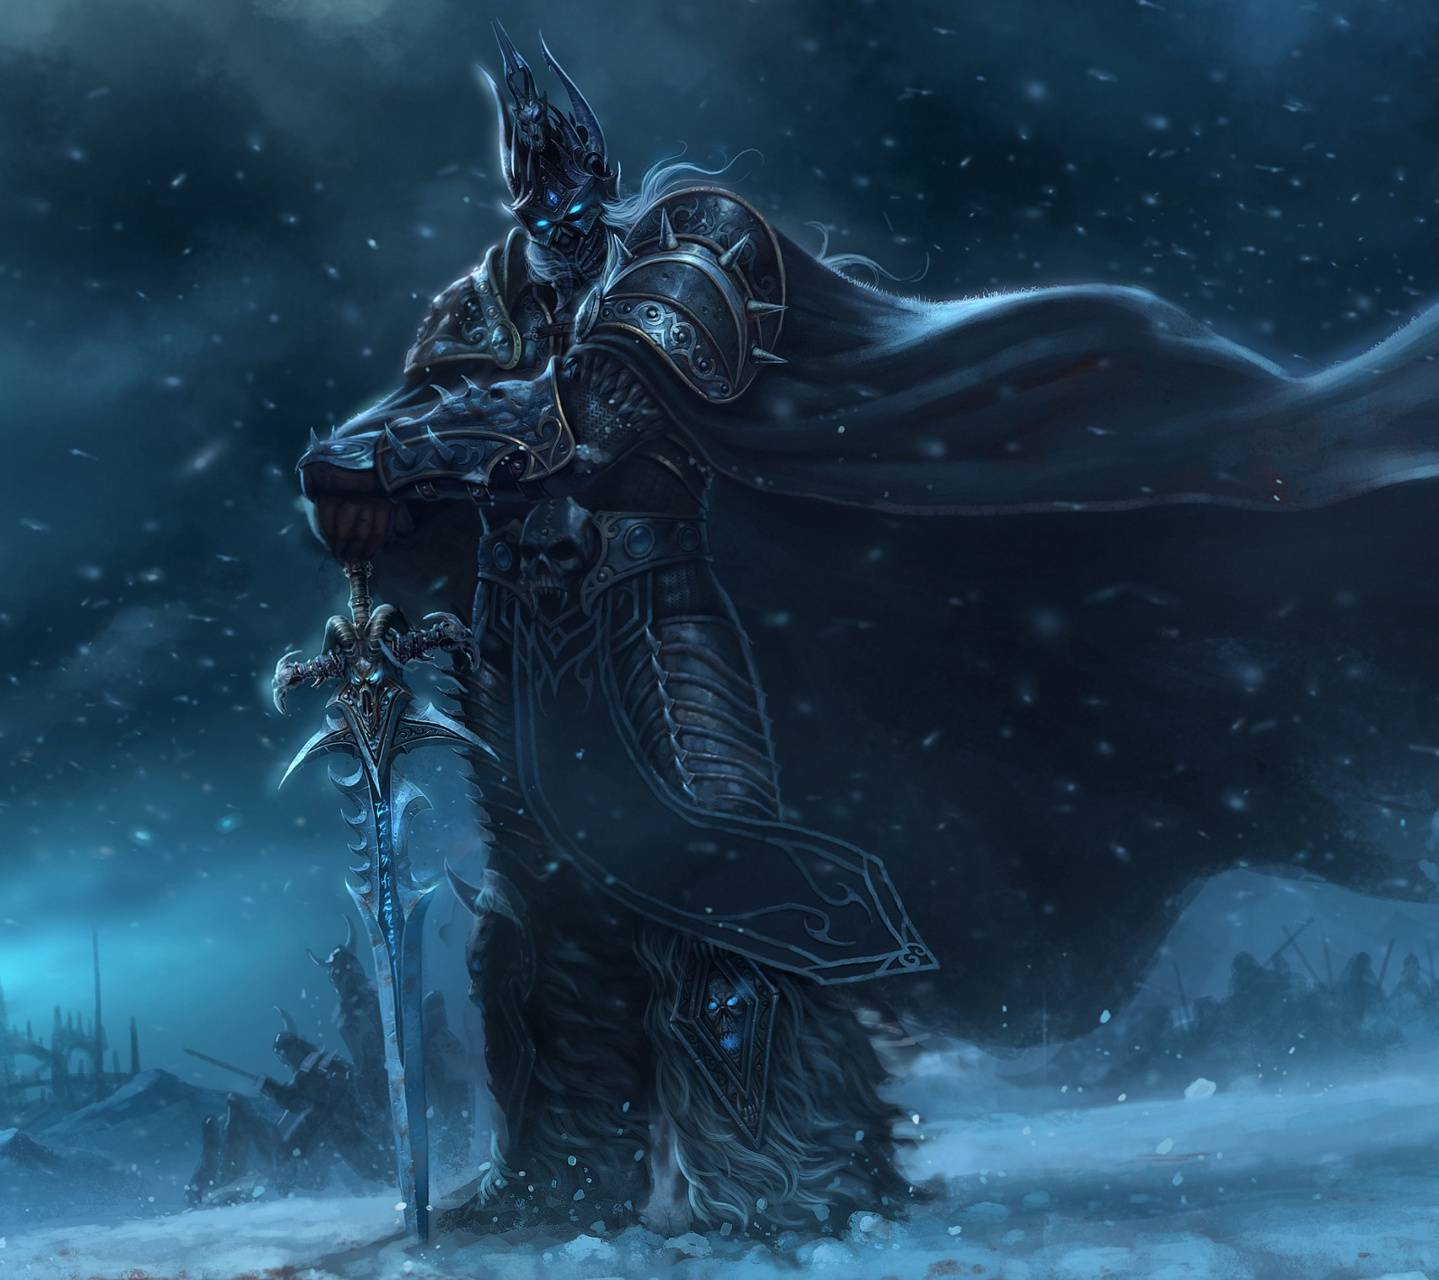 Lich King Wallpaper by diego10kn - 2e - Free on ZEDGE™